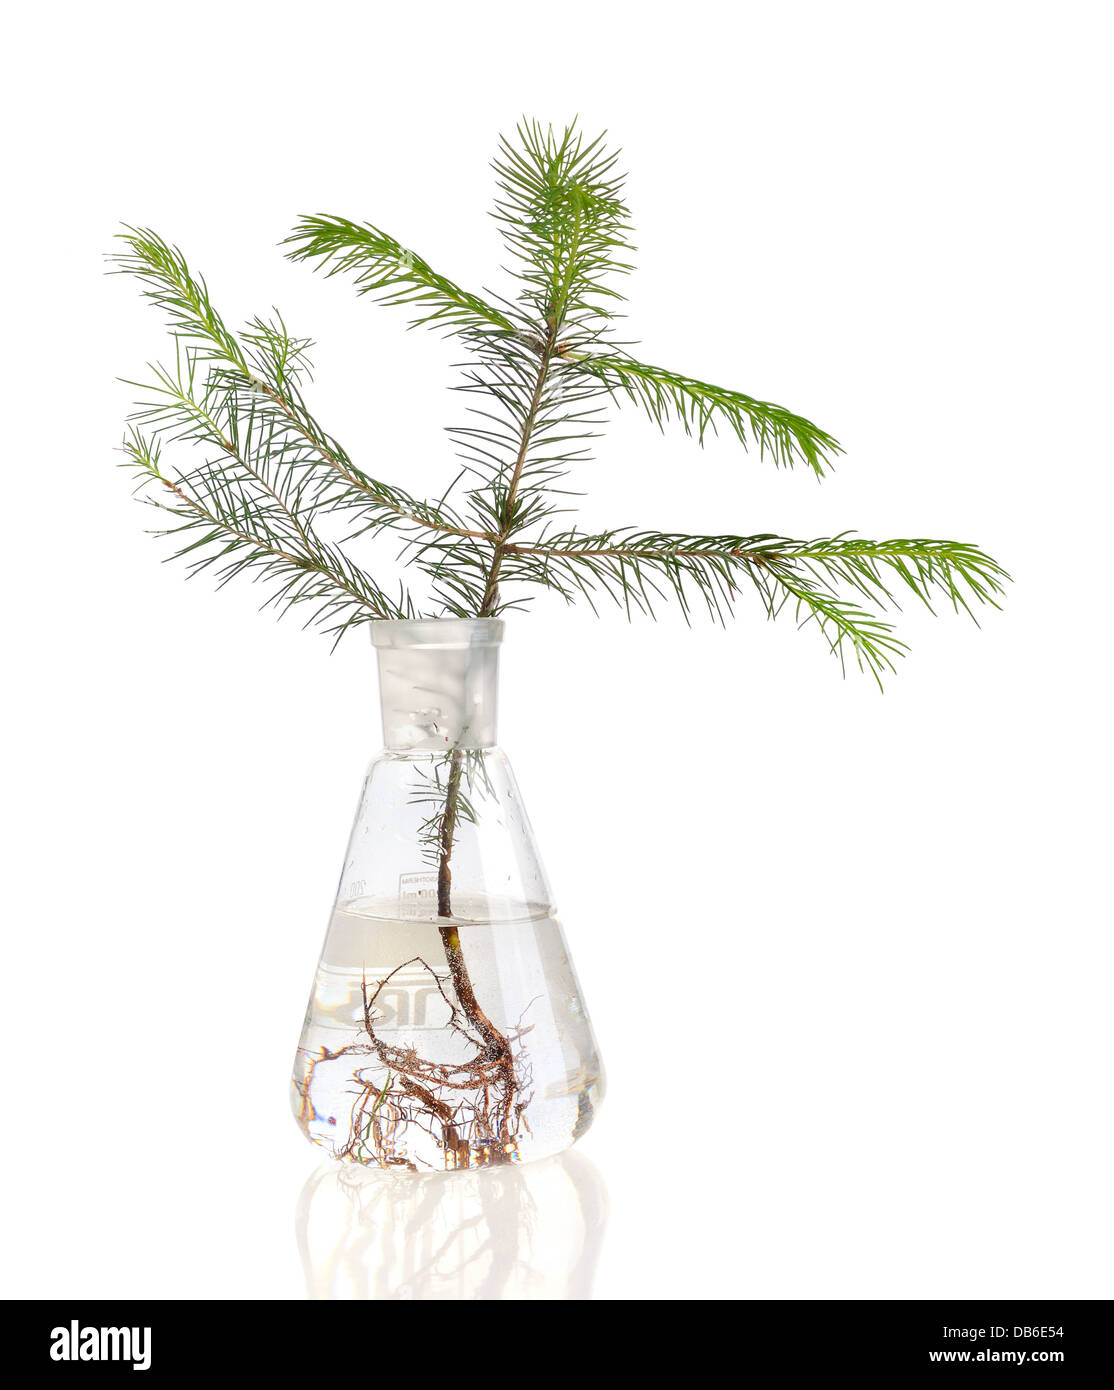 Two young fir trees growthing in in chemistry test tube on white background - Stock Image